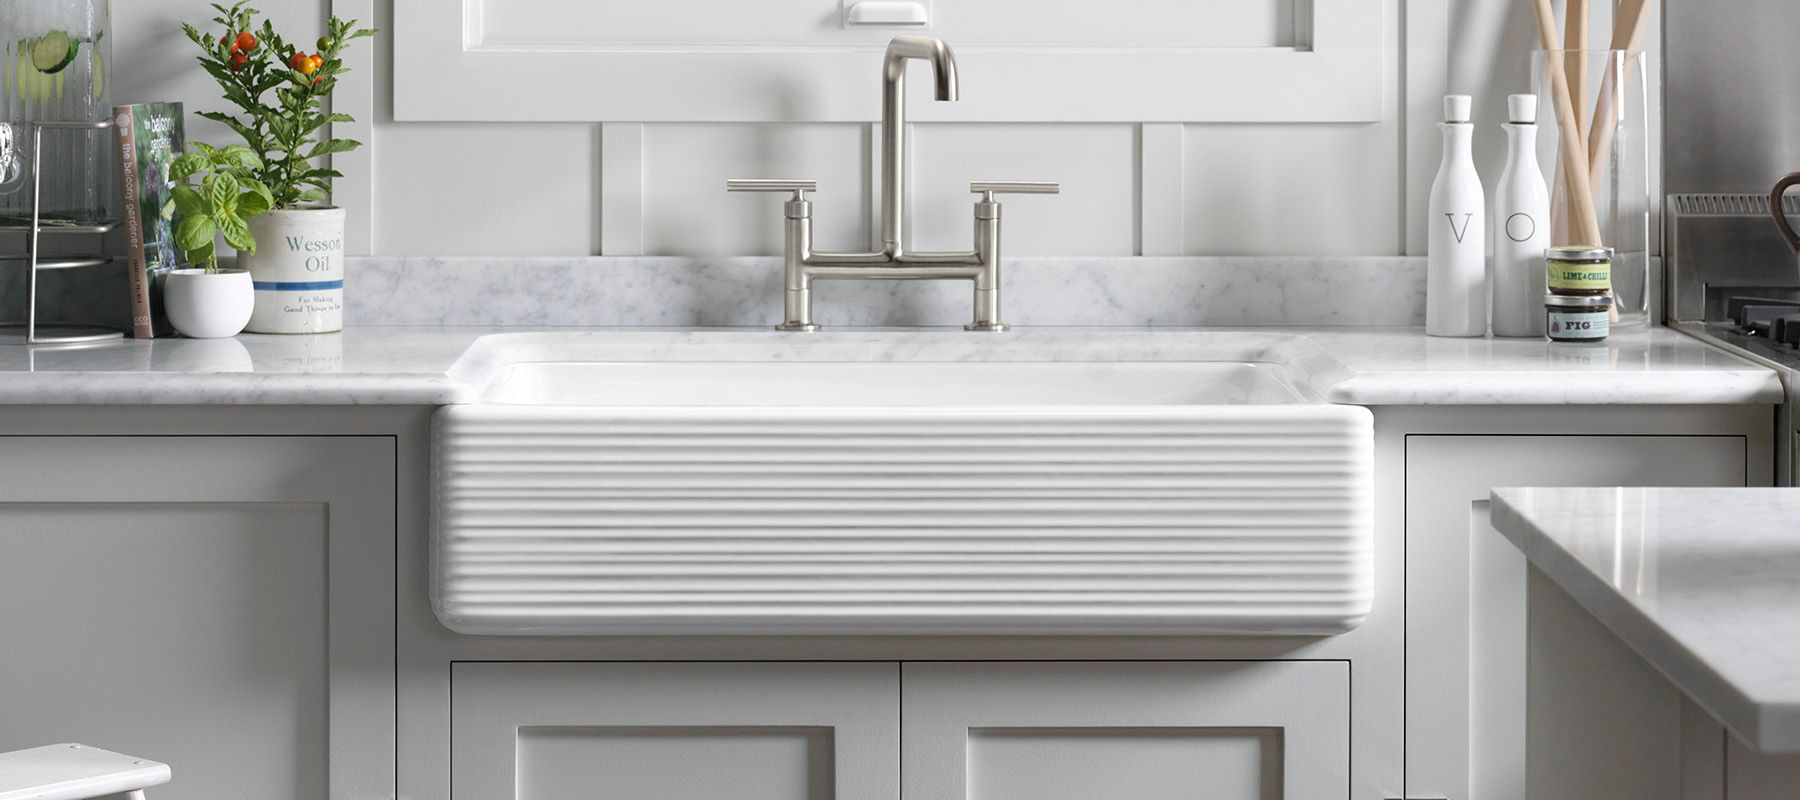 Modern Kitchen Sinks kitchen sinks | kitchen | kohler